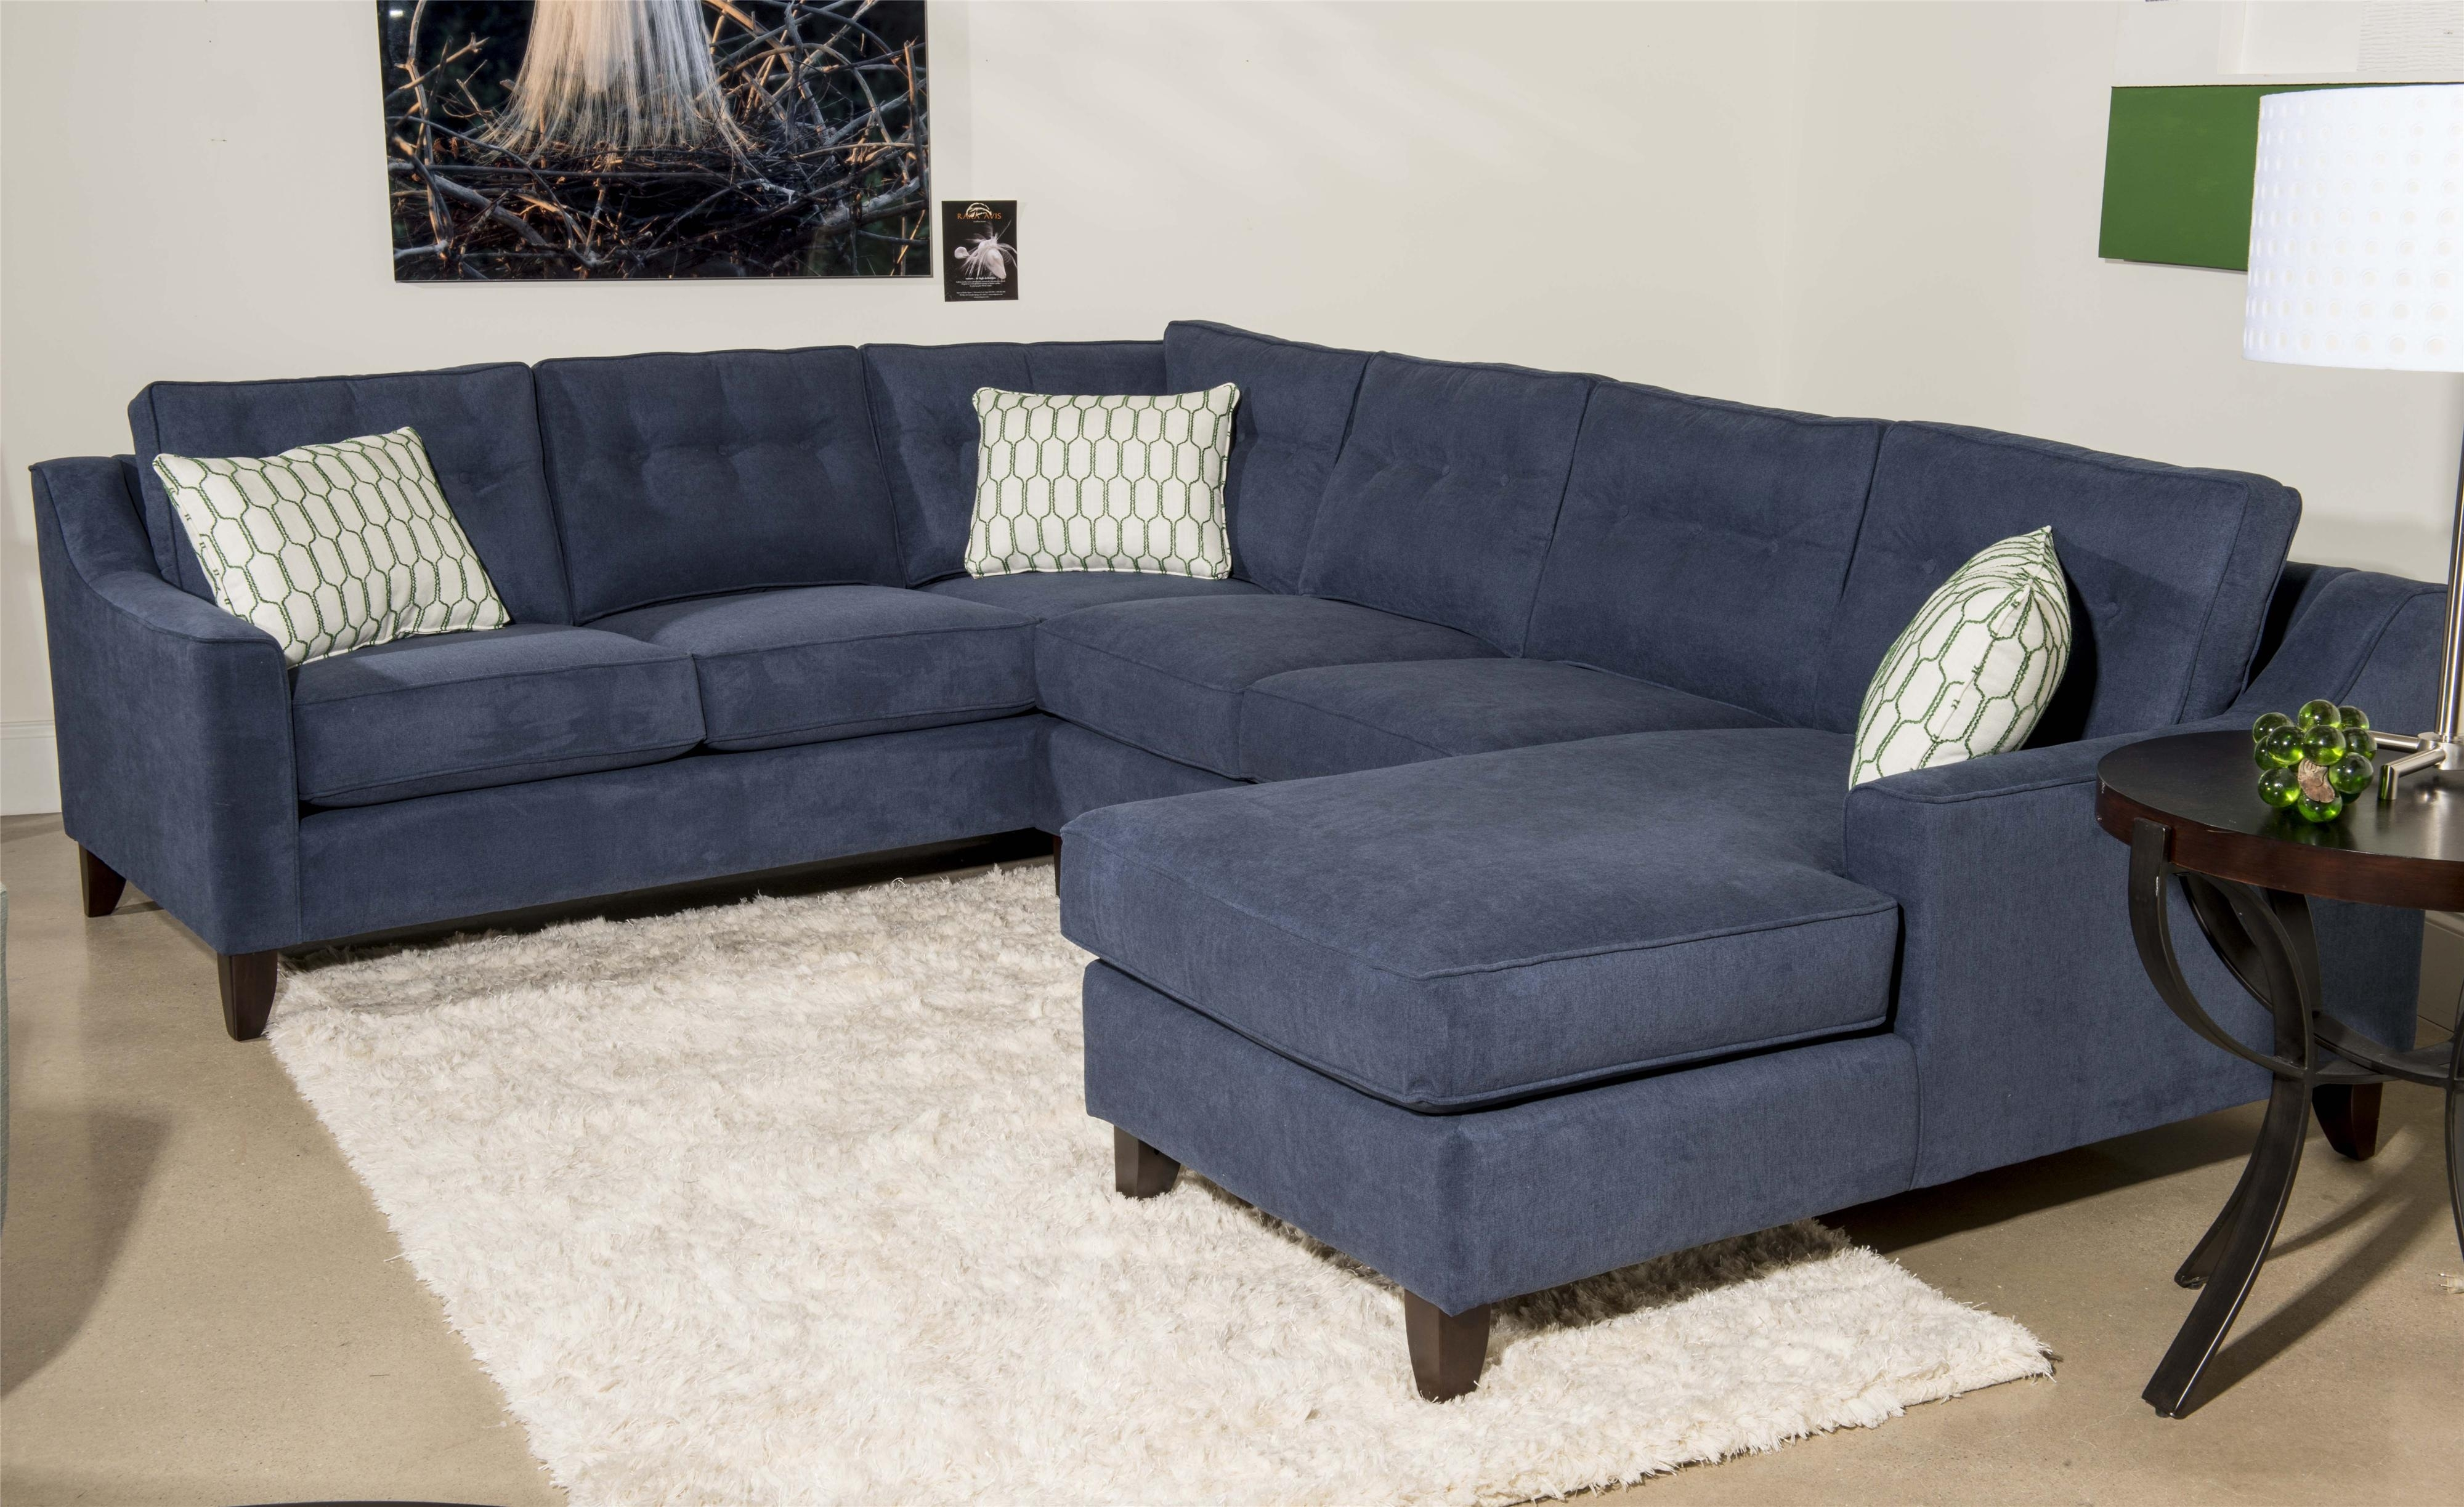 Sectional Sofa Design: 3 Pieces Wonderful Sofa With Chaise Multi With Regard To Blue U Shaped Sectionals (View 6 of 10)